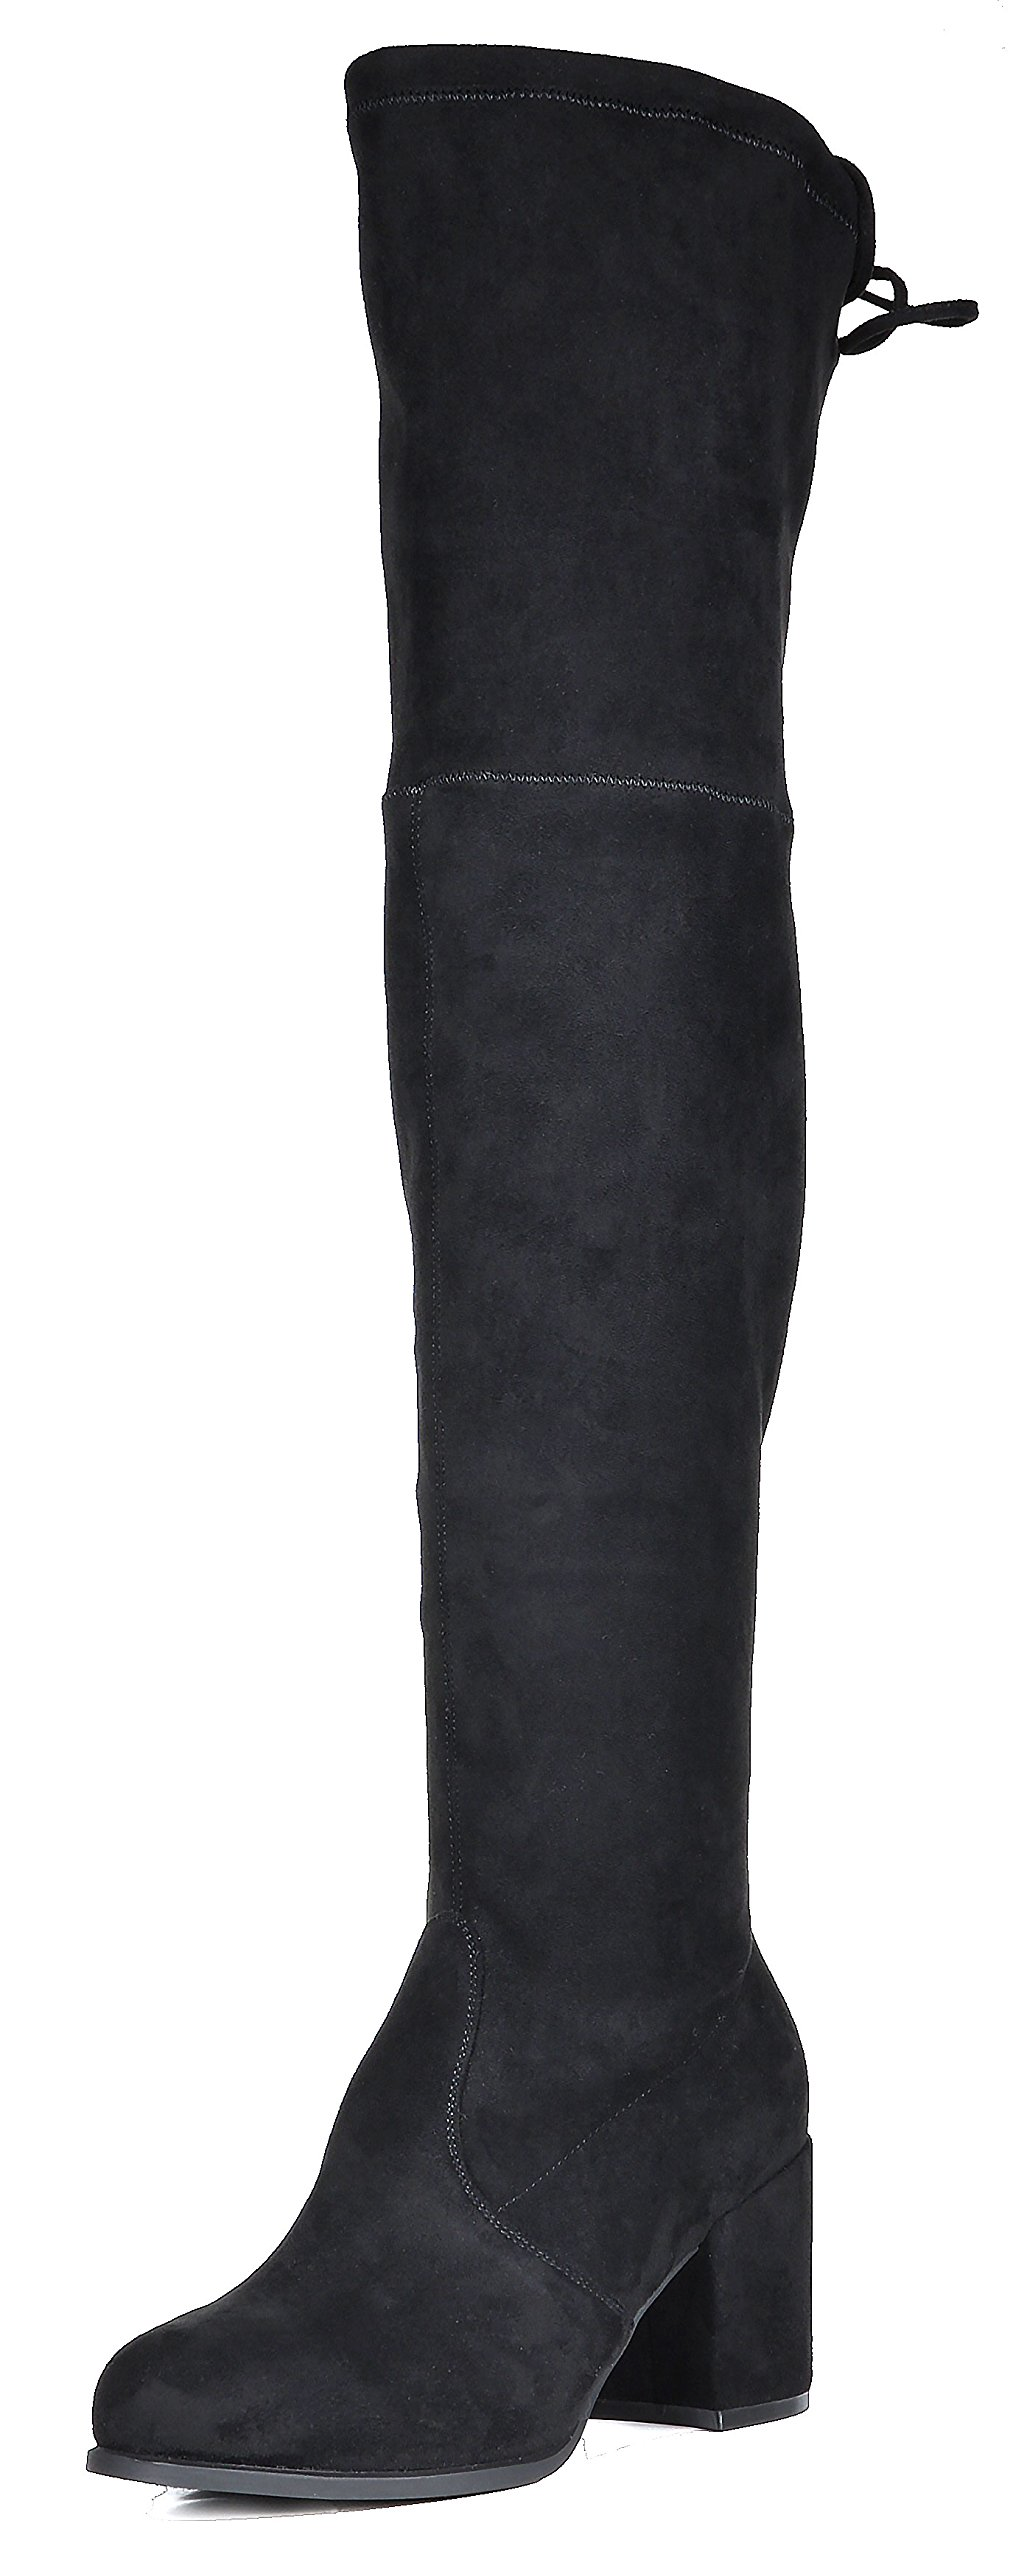 TOETOS Women's Prade-High Black Over The Knee Chunky Heel Boots Size 7 M US